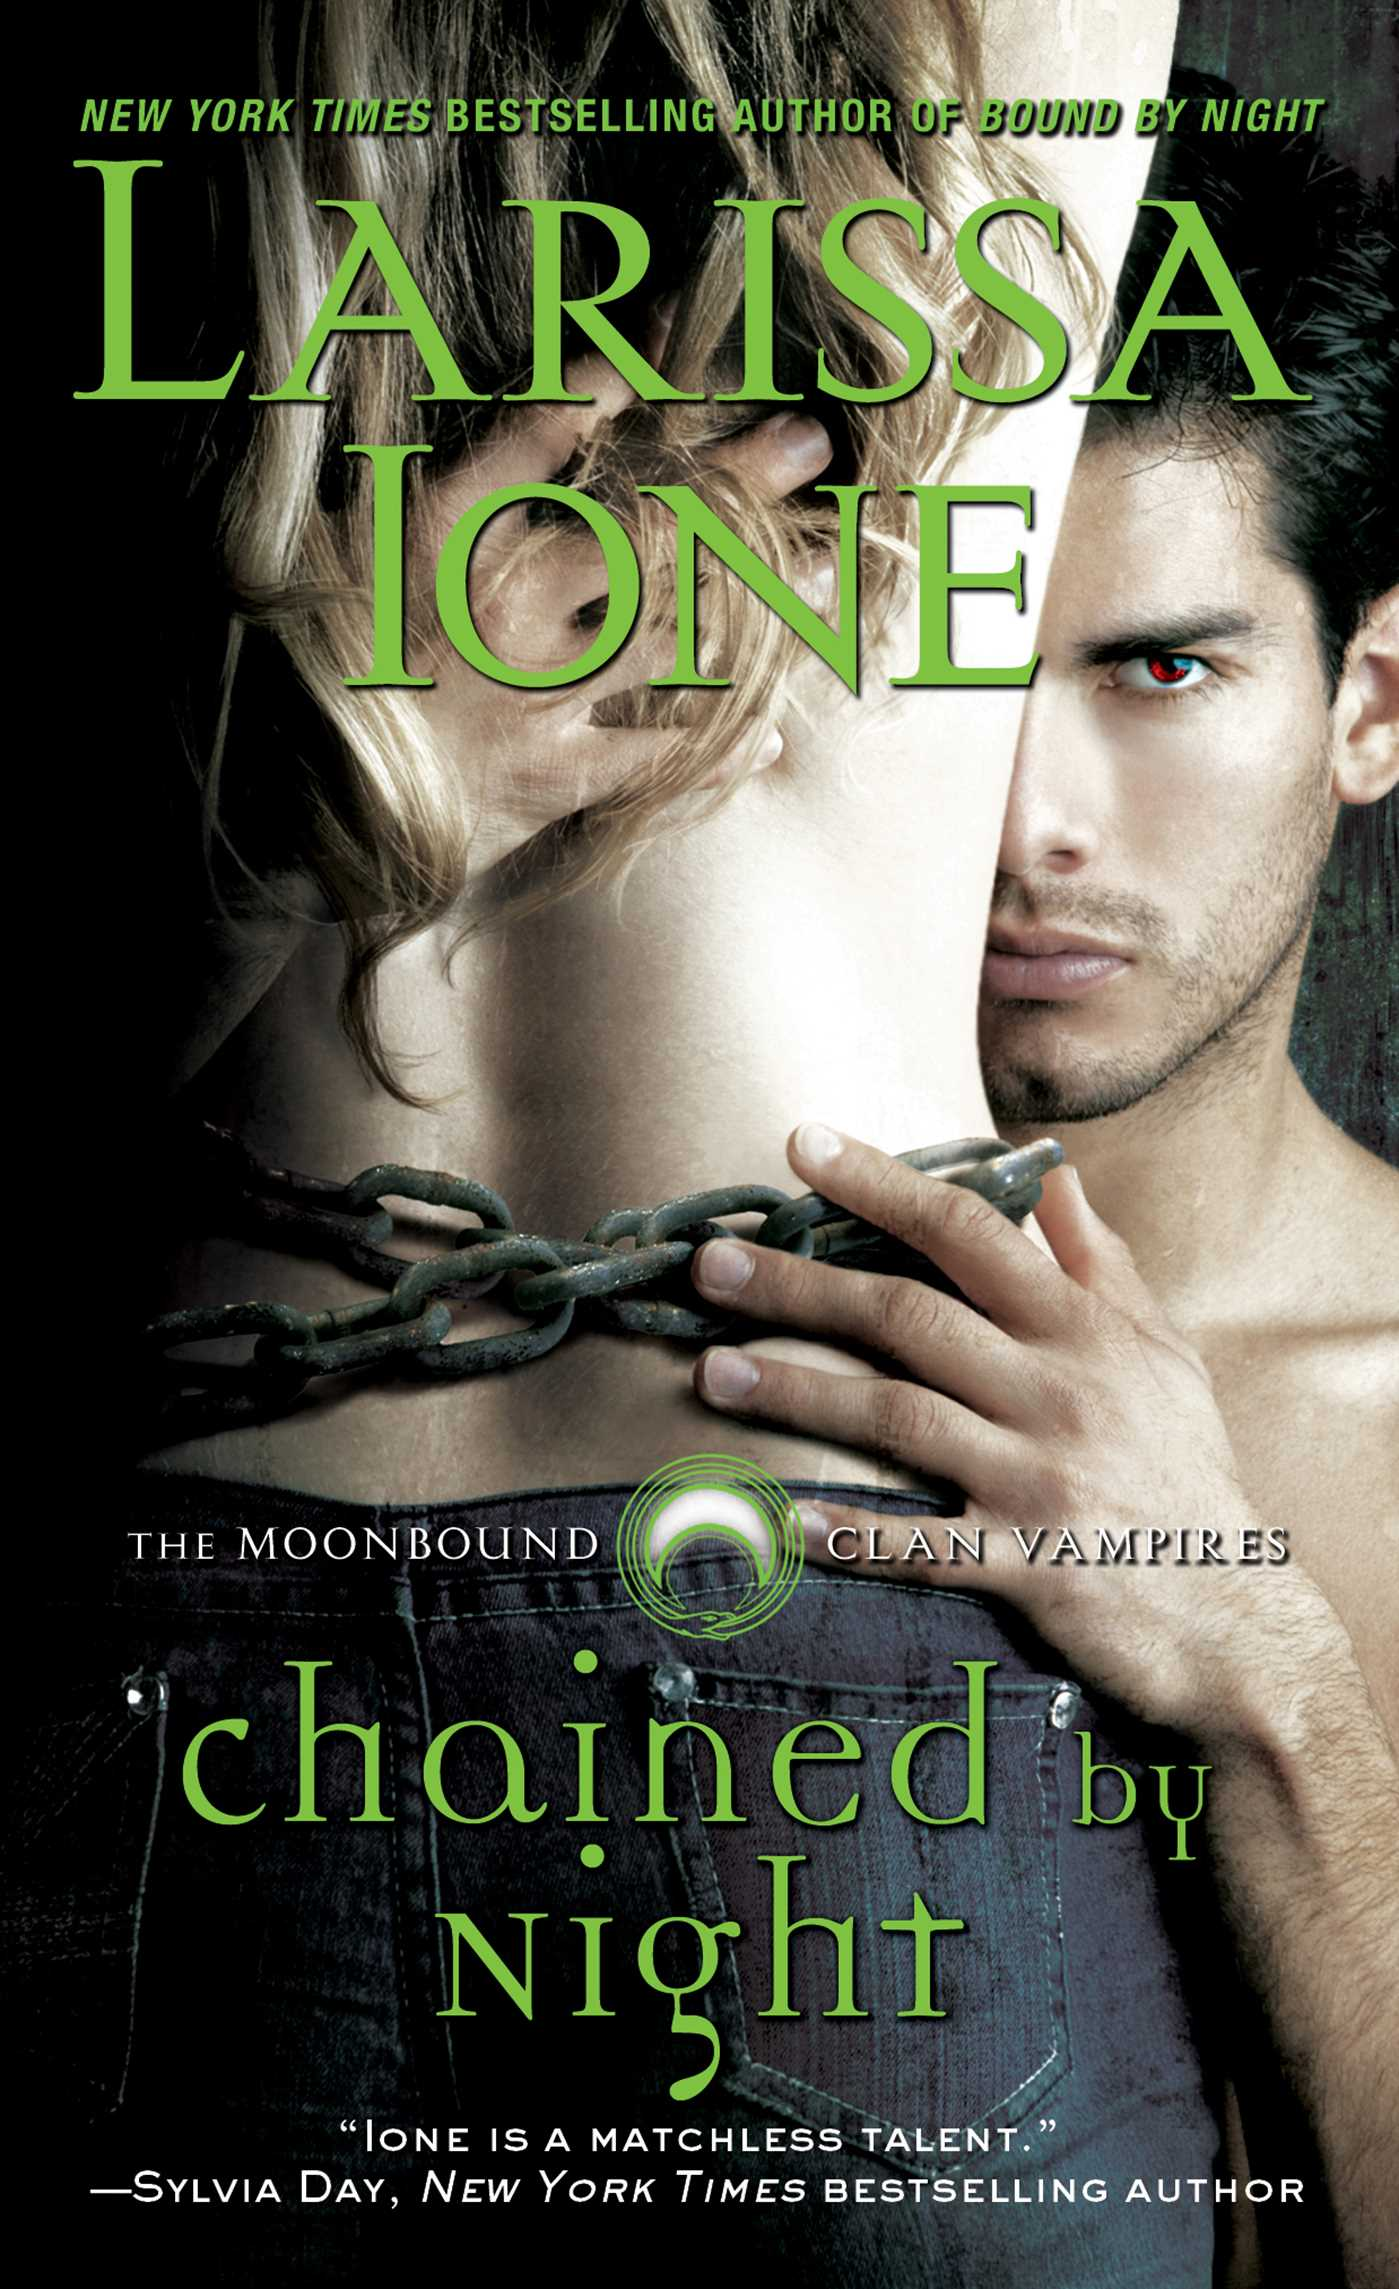 Chained-by-night-9781476700182_hr